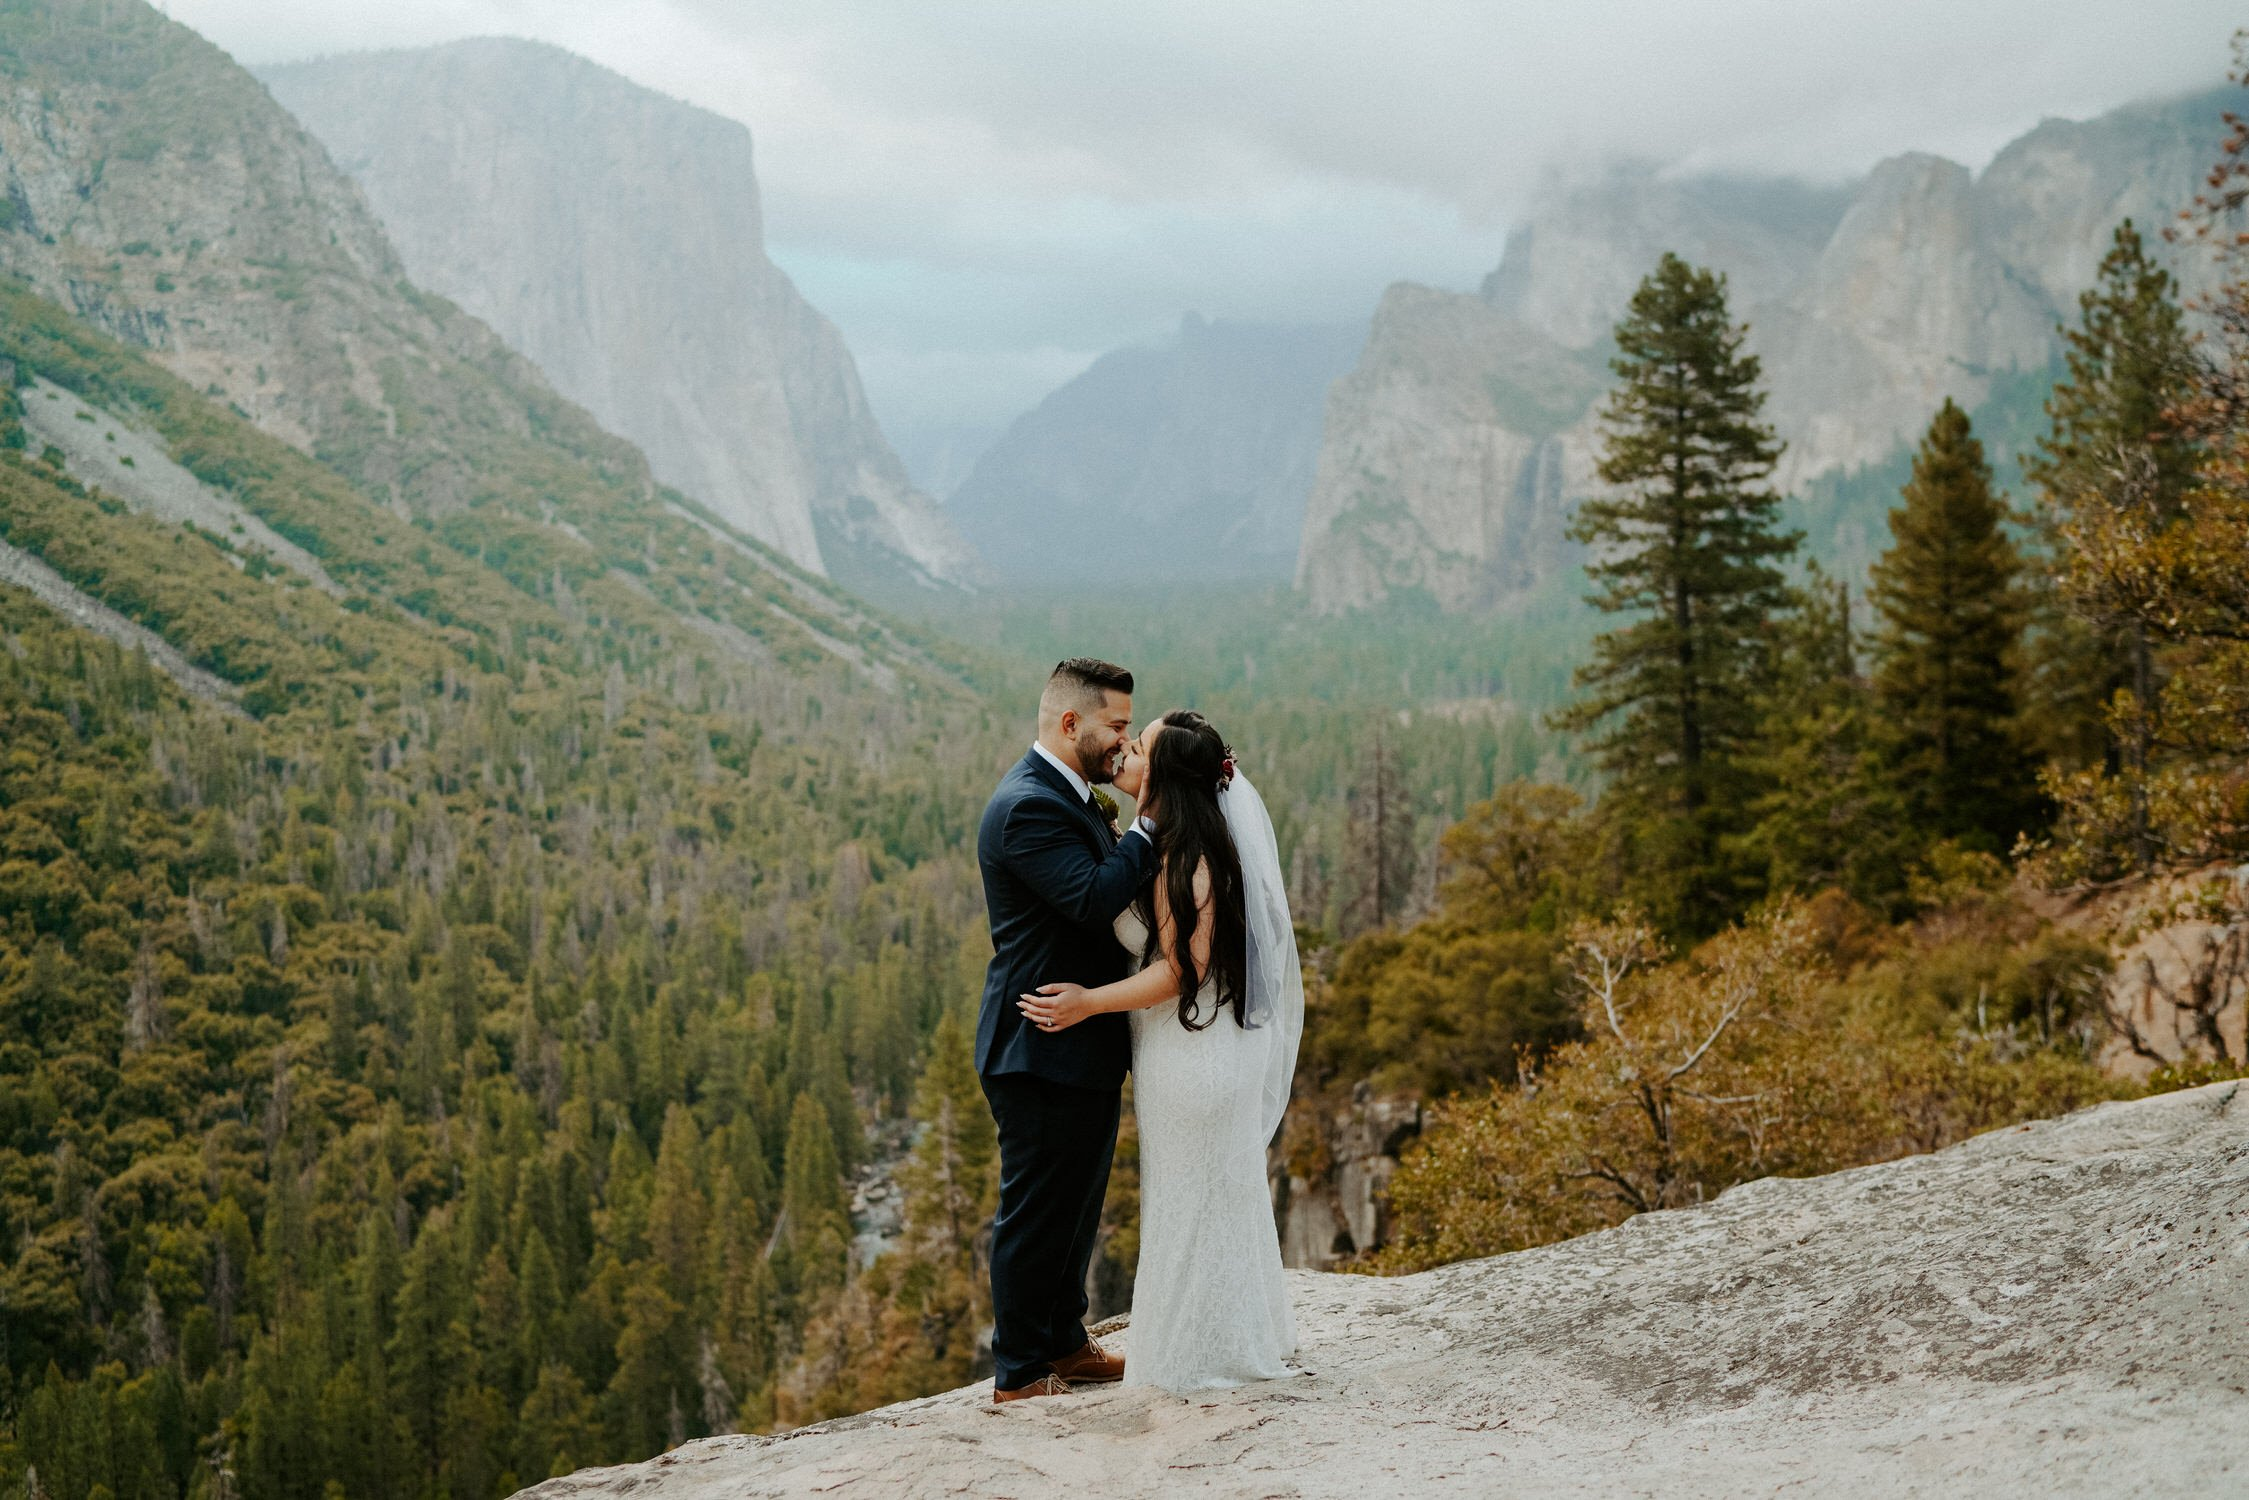 Yosemite National Park sunrise elopement at Tunnel View